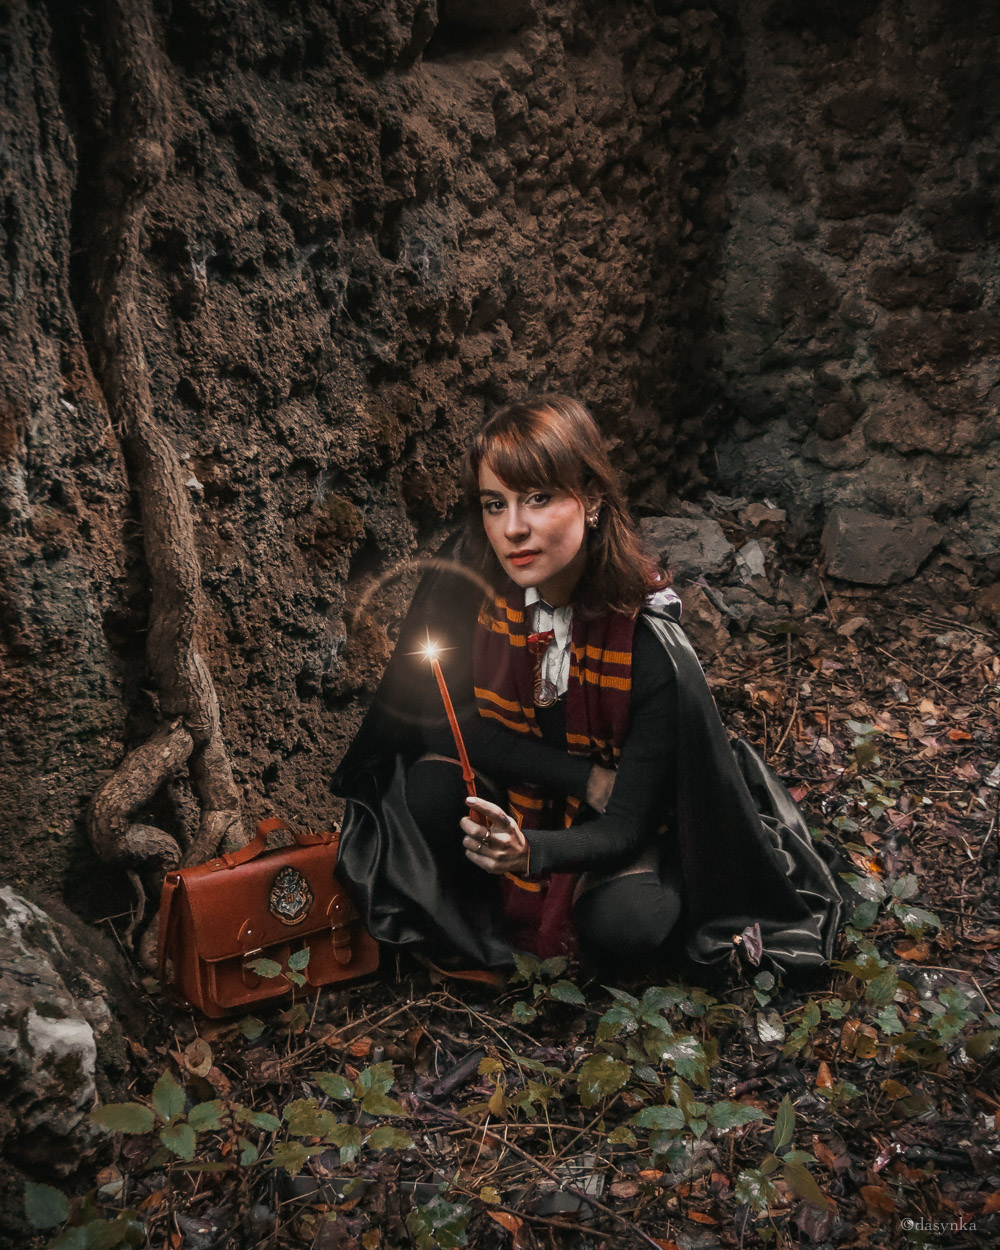 dasynka-fashion-blogger-blog-cosplay-cosplayer-disney-disneyland-halloween-make-up-costume-ideas-death-party-decorations-costumes-witch-harry-potter-hogwarts-aragog-forbidden-forest-dementor-voldemort-you-know-who-gryffindor-lumos-maxima-death-eater-wand-expecto-patronum-dementor